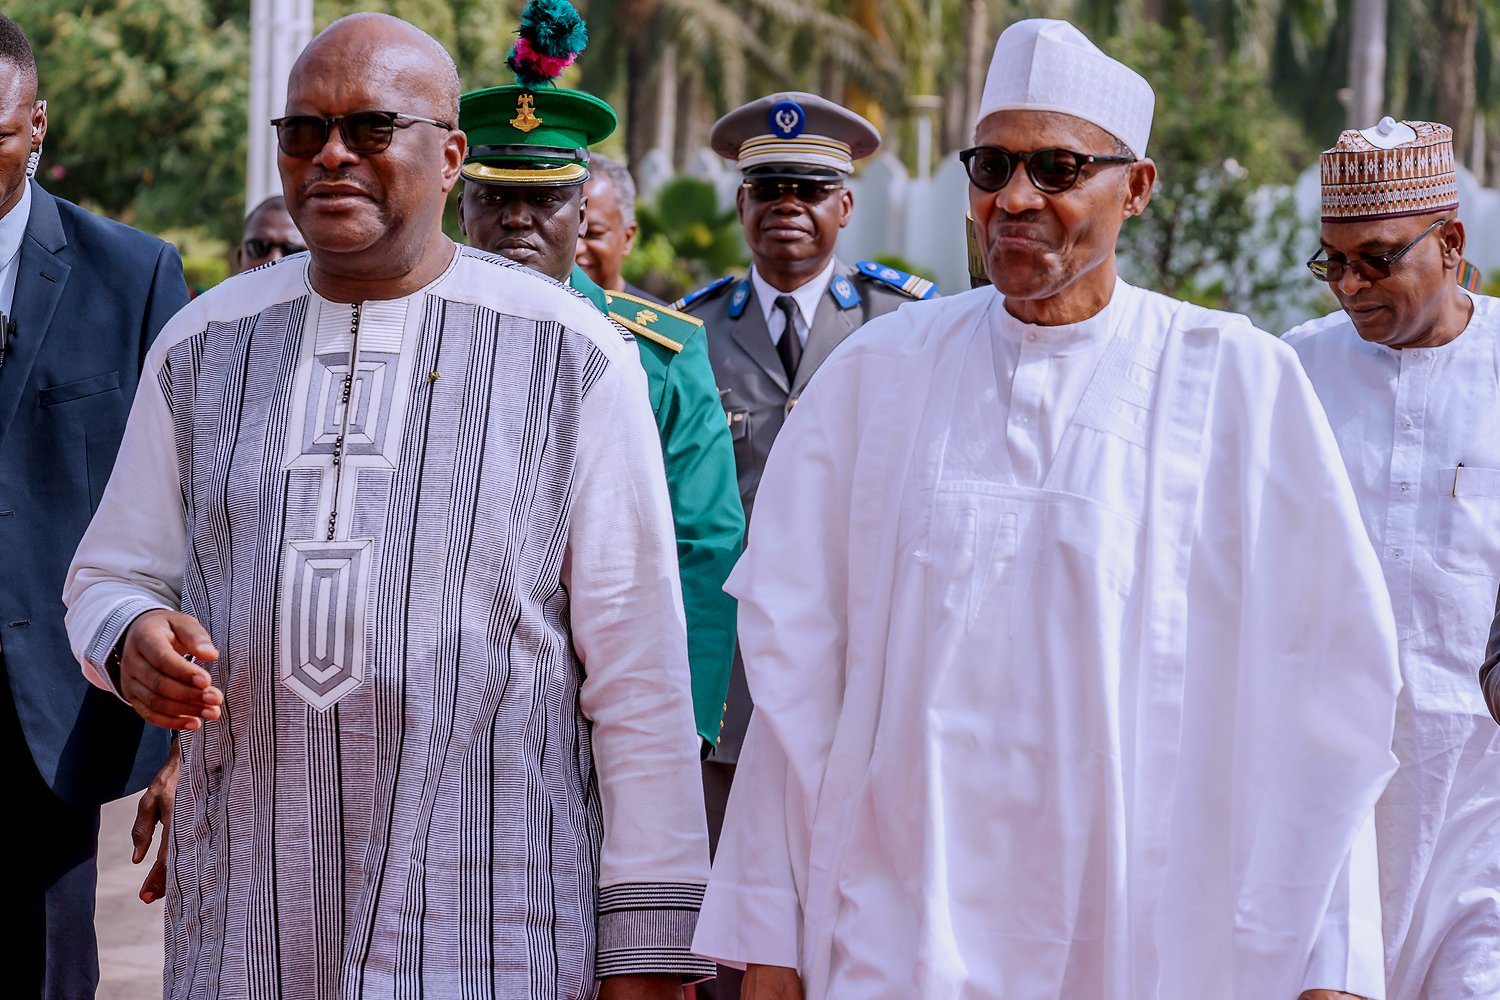 Why Nigeria's land borders remain closed, Buhari explains to Burkina Faso's leader